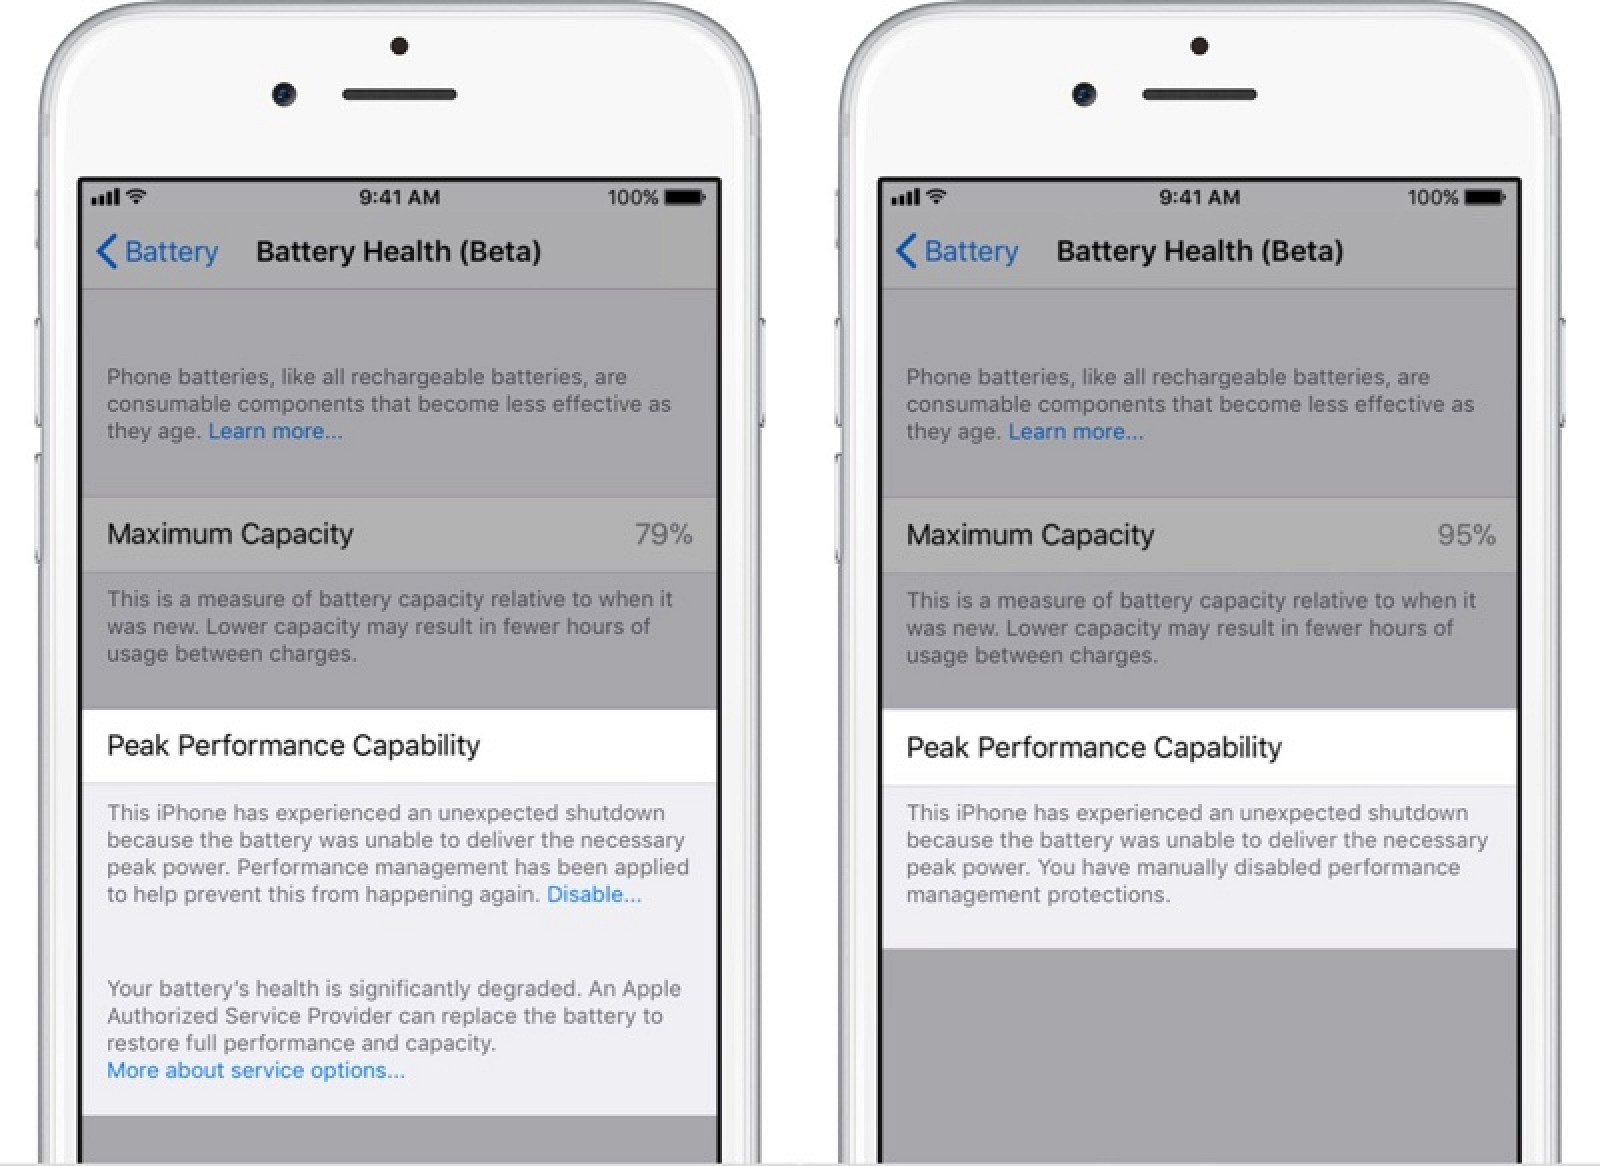 e9070fb8bdb78 How to Disable Apple s Performance Management Features in Older iPhones in  the iOS 11.3 Beta - MacRumors